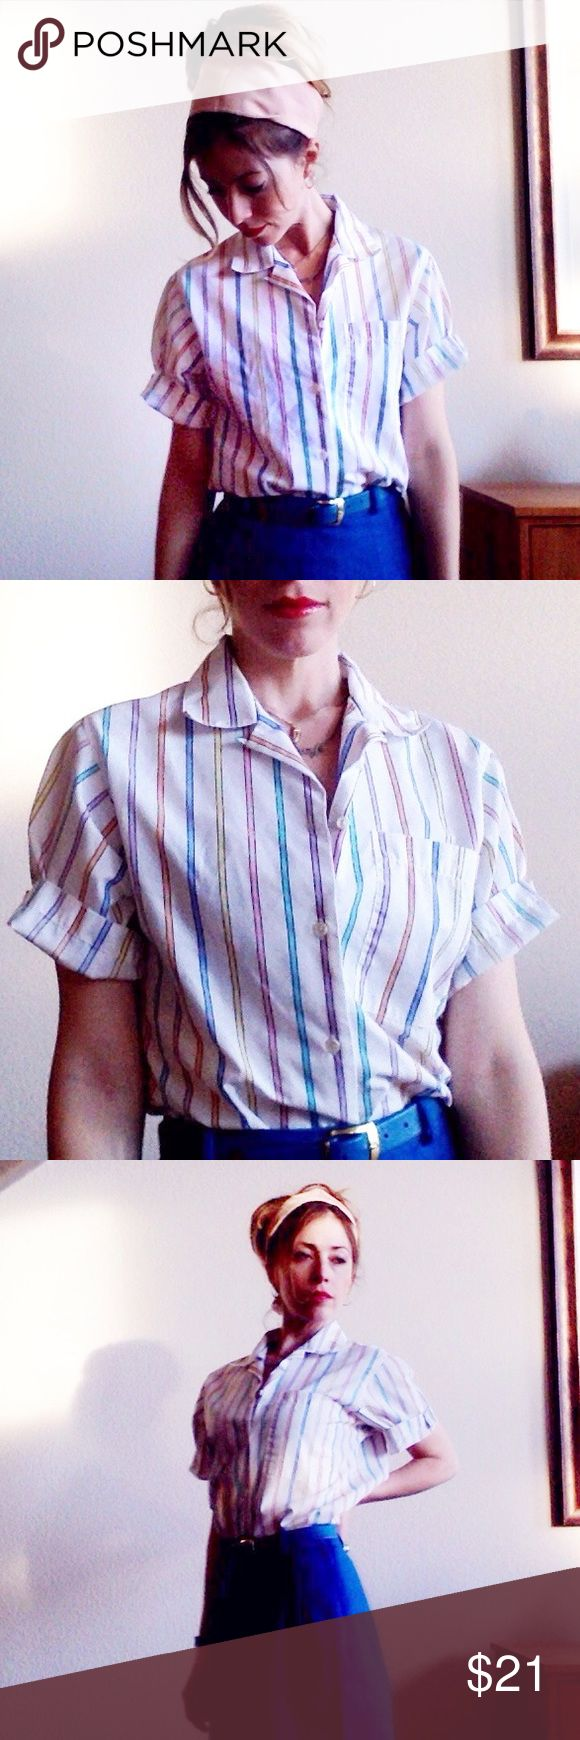 VTG80s Retro Pastel Rainbow Stripe Button Down True vintage! In darn near perfect condition. 80s/90s pastel rainbow ladies blouse. Classic, yet a real standout piece. Looks adorable tucked into high-waisted skirts/jeans. Can also be knotted up front for that classic 90's look! Tag says size 8 - would best fit a ladies M. I'm an XS, and it's definitely a bit big on me  Offers welcome!  Retro Anthropologie J Crew Banana Dior Retro Vintage Tops Button Down Shirts